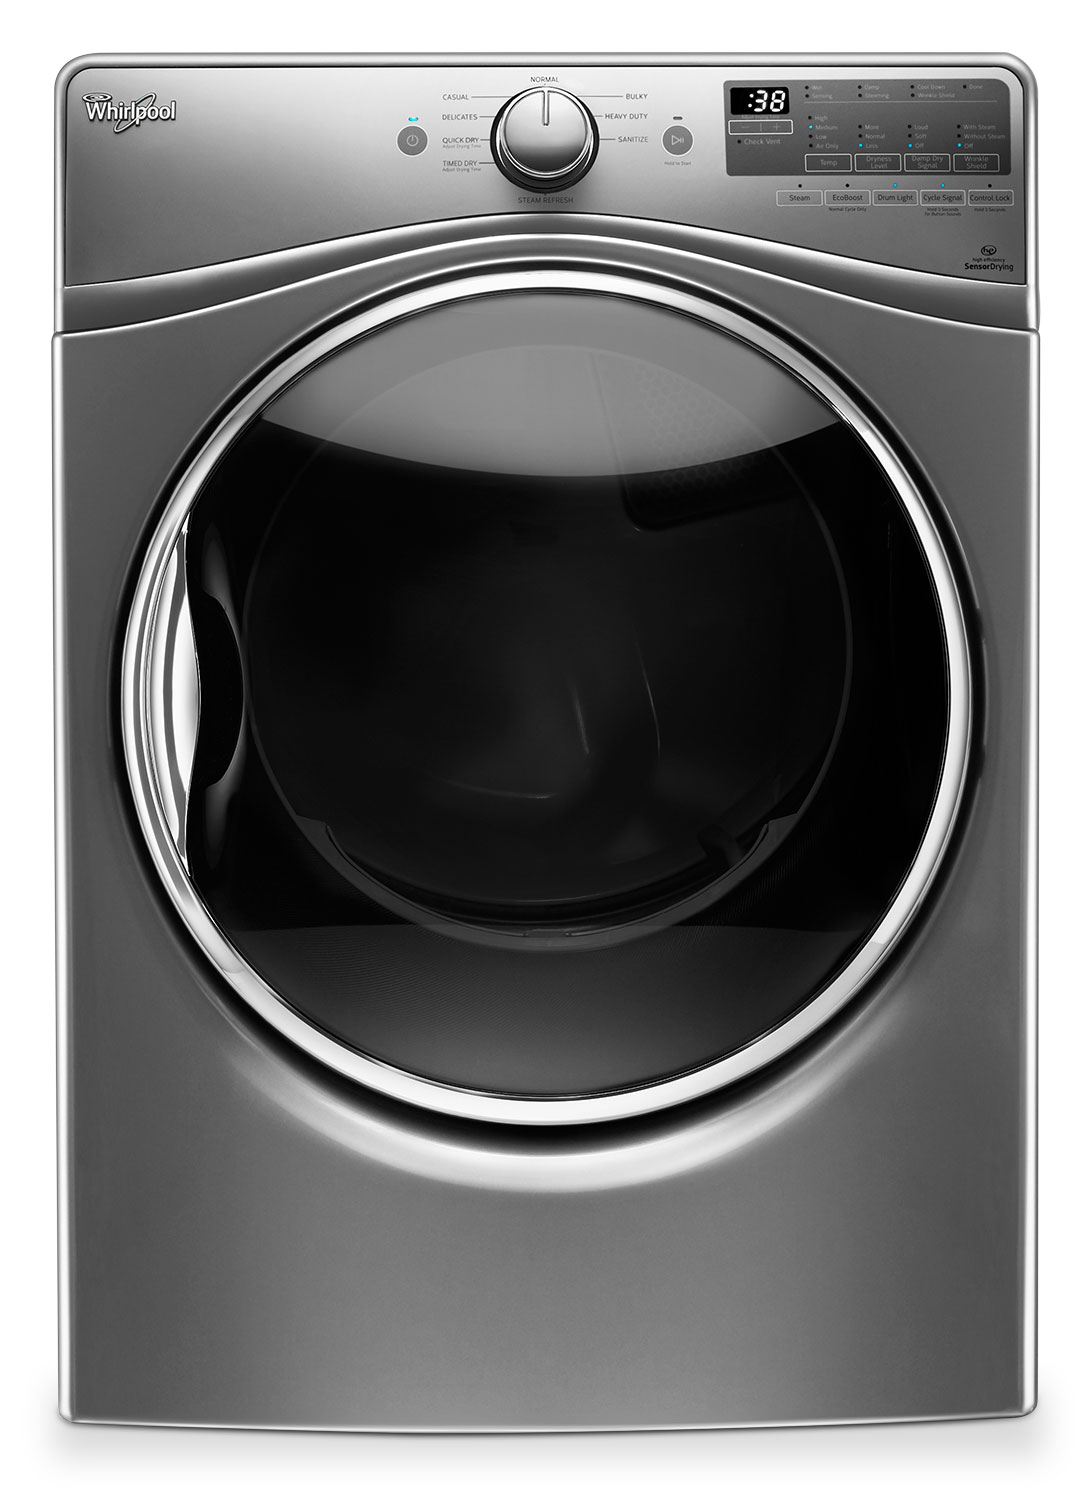 Whirlpool Chrome Shadow Electric Dryer (7.4 Cu. Ft.) - YWED90HEFC